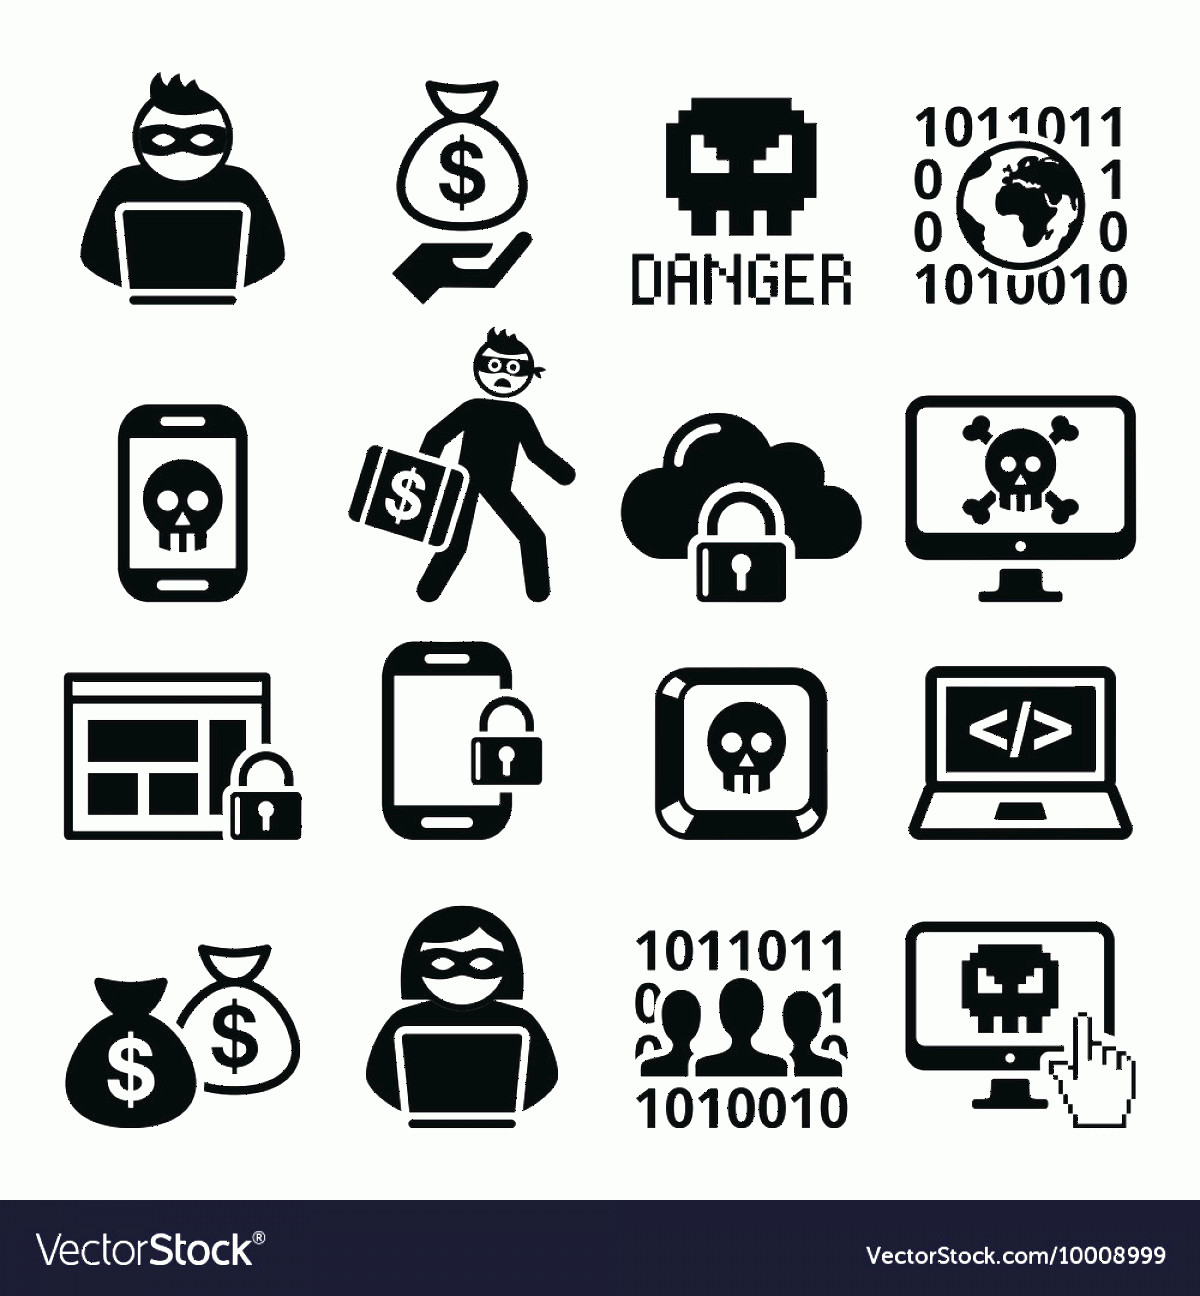 Multi-Vector Attack Plans: Hacker Cyber Attack Cyber Crime Icons Set Vector